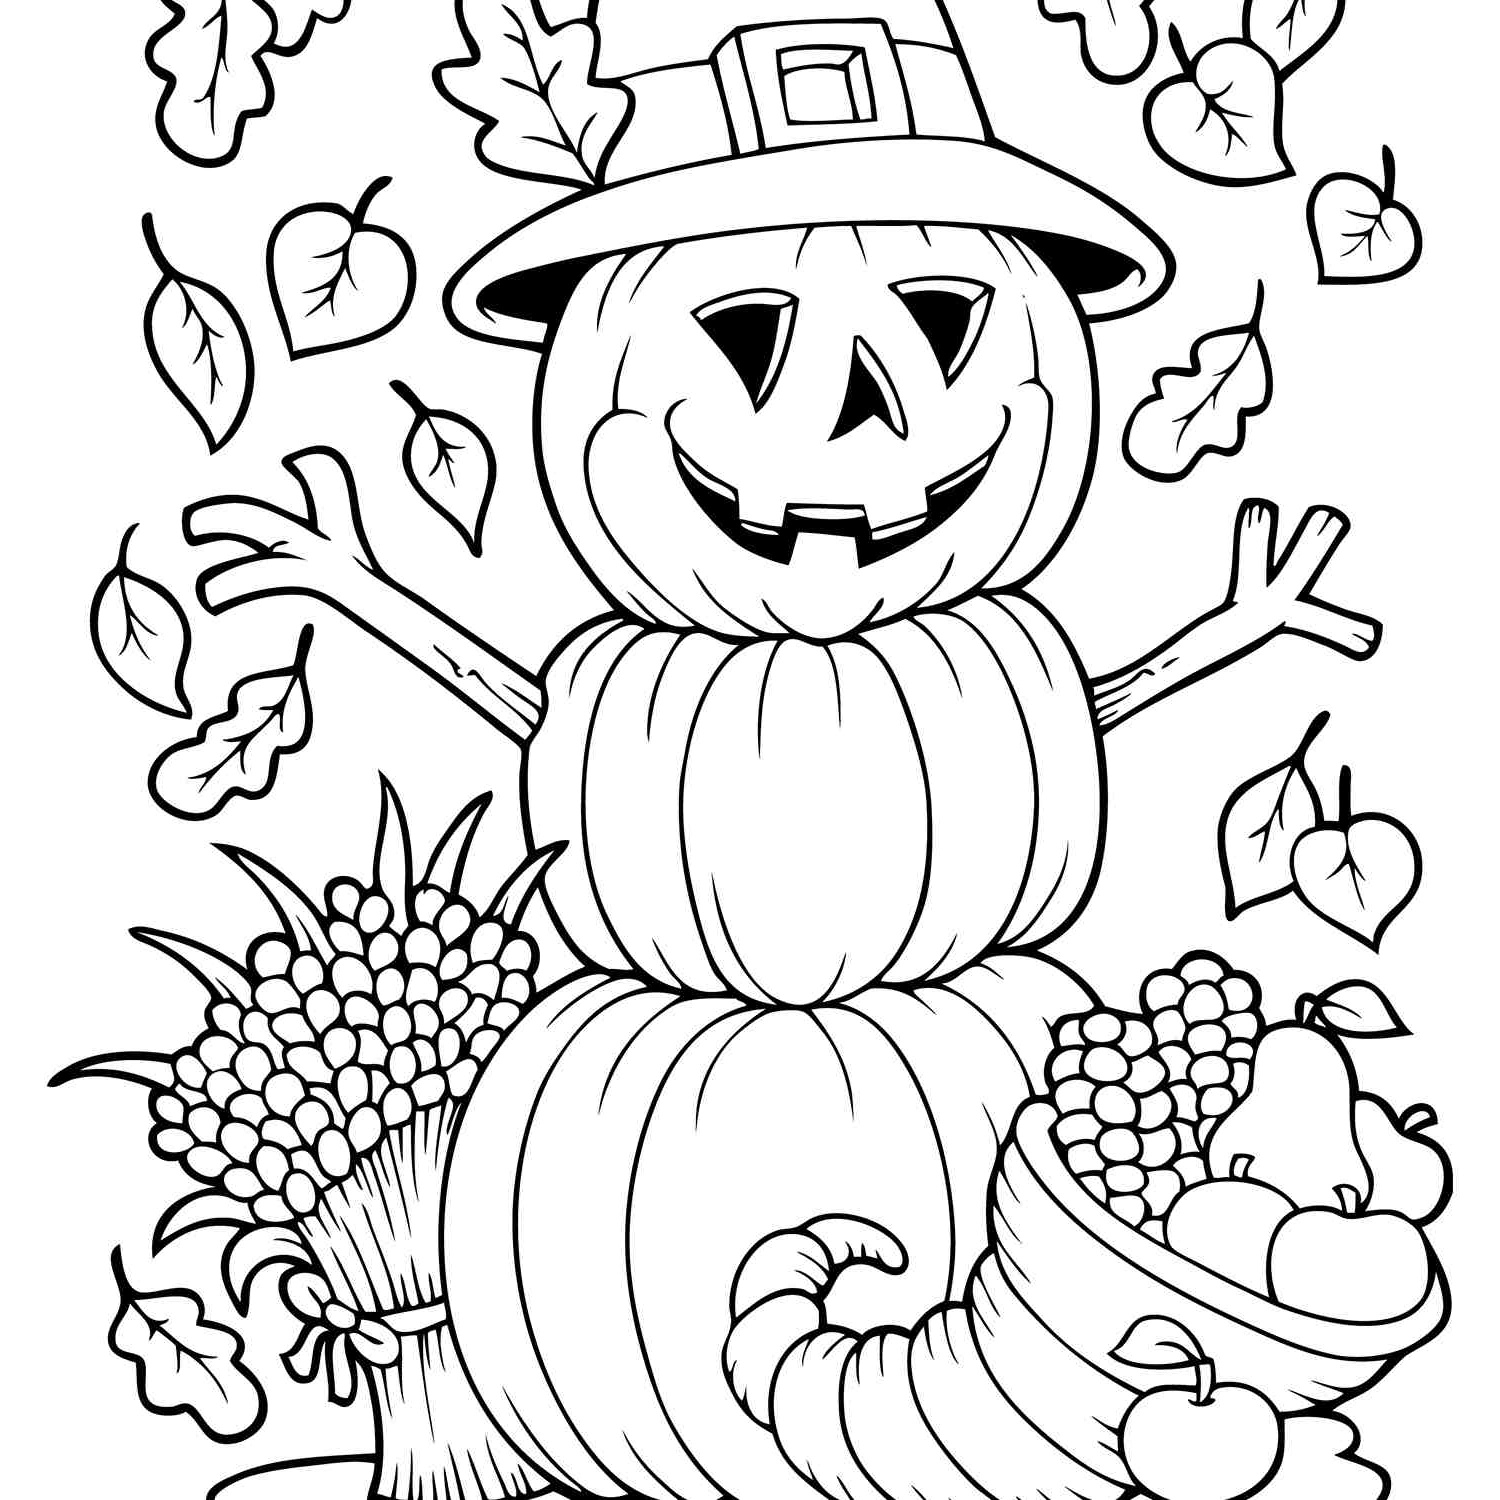 Coloring Pages : Inspirational Photos Of Memorial Coloring intended for Free Printable Multiplication For Elementary Students